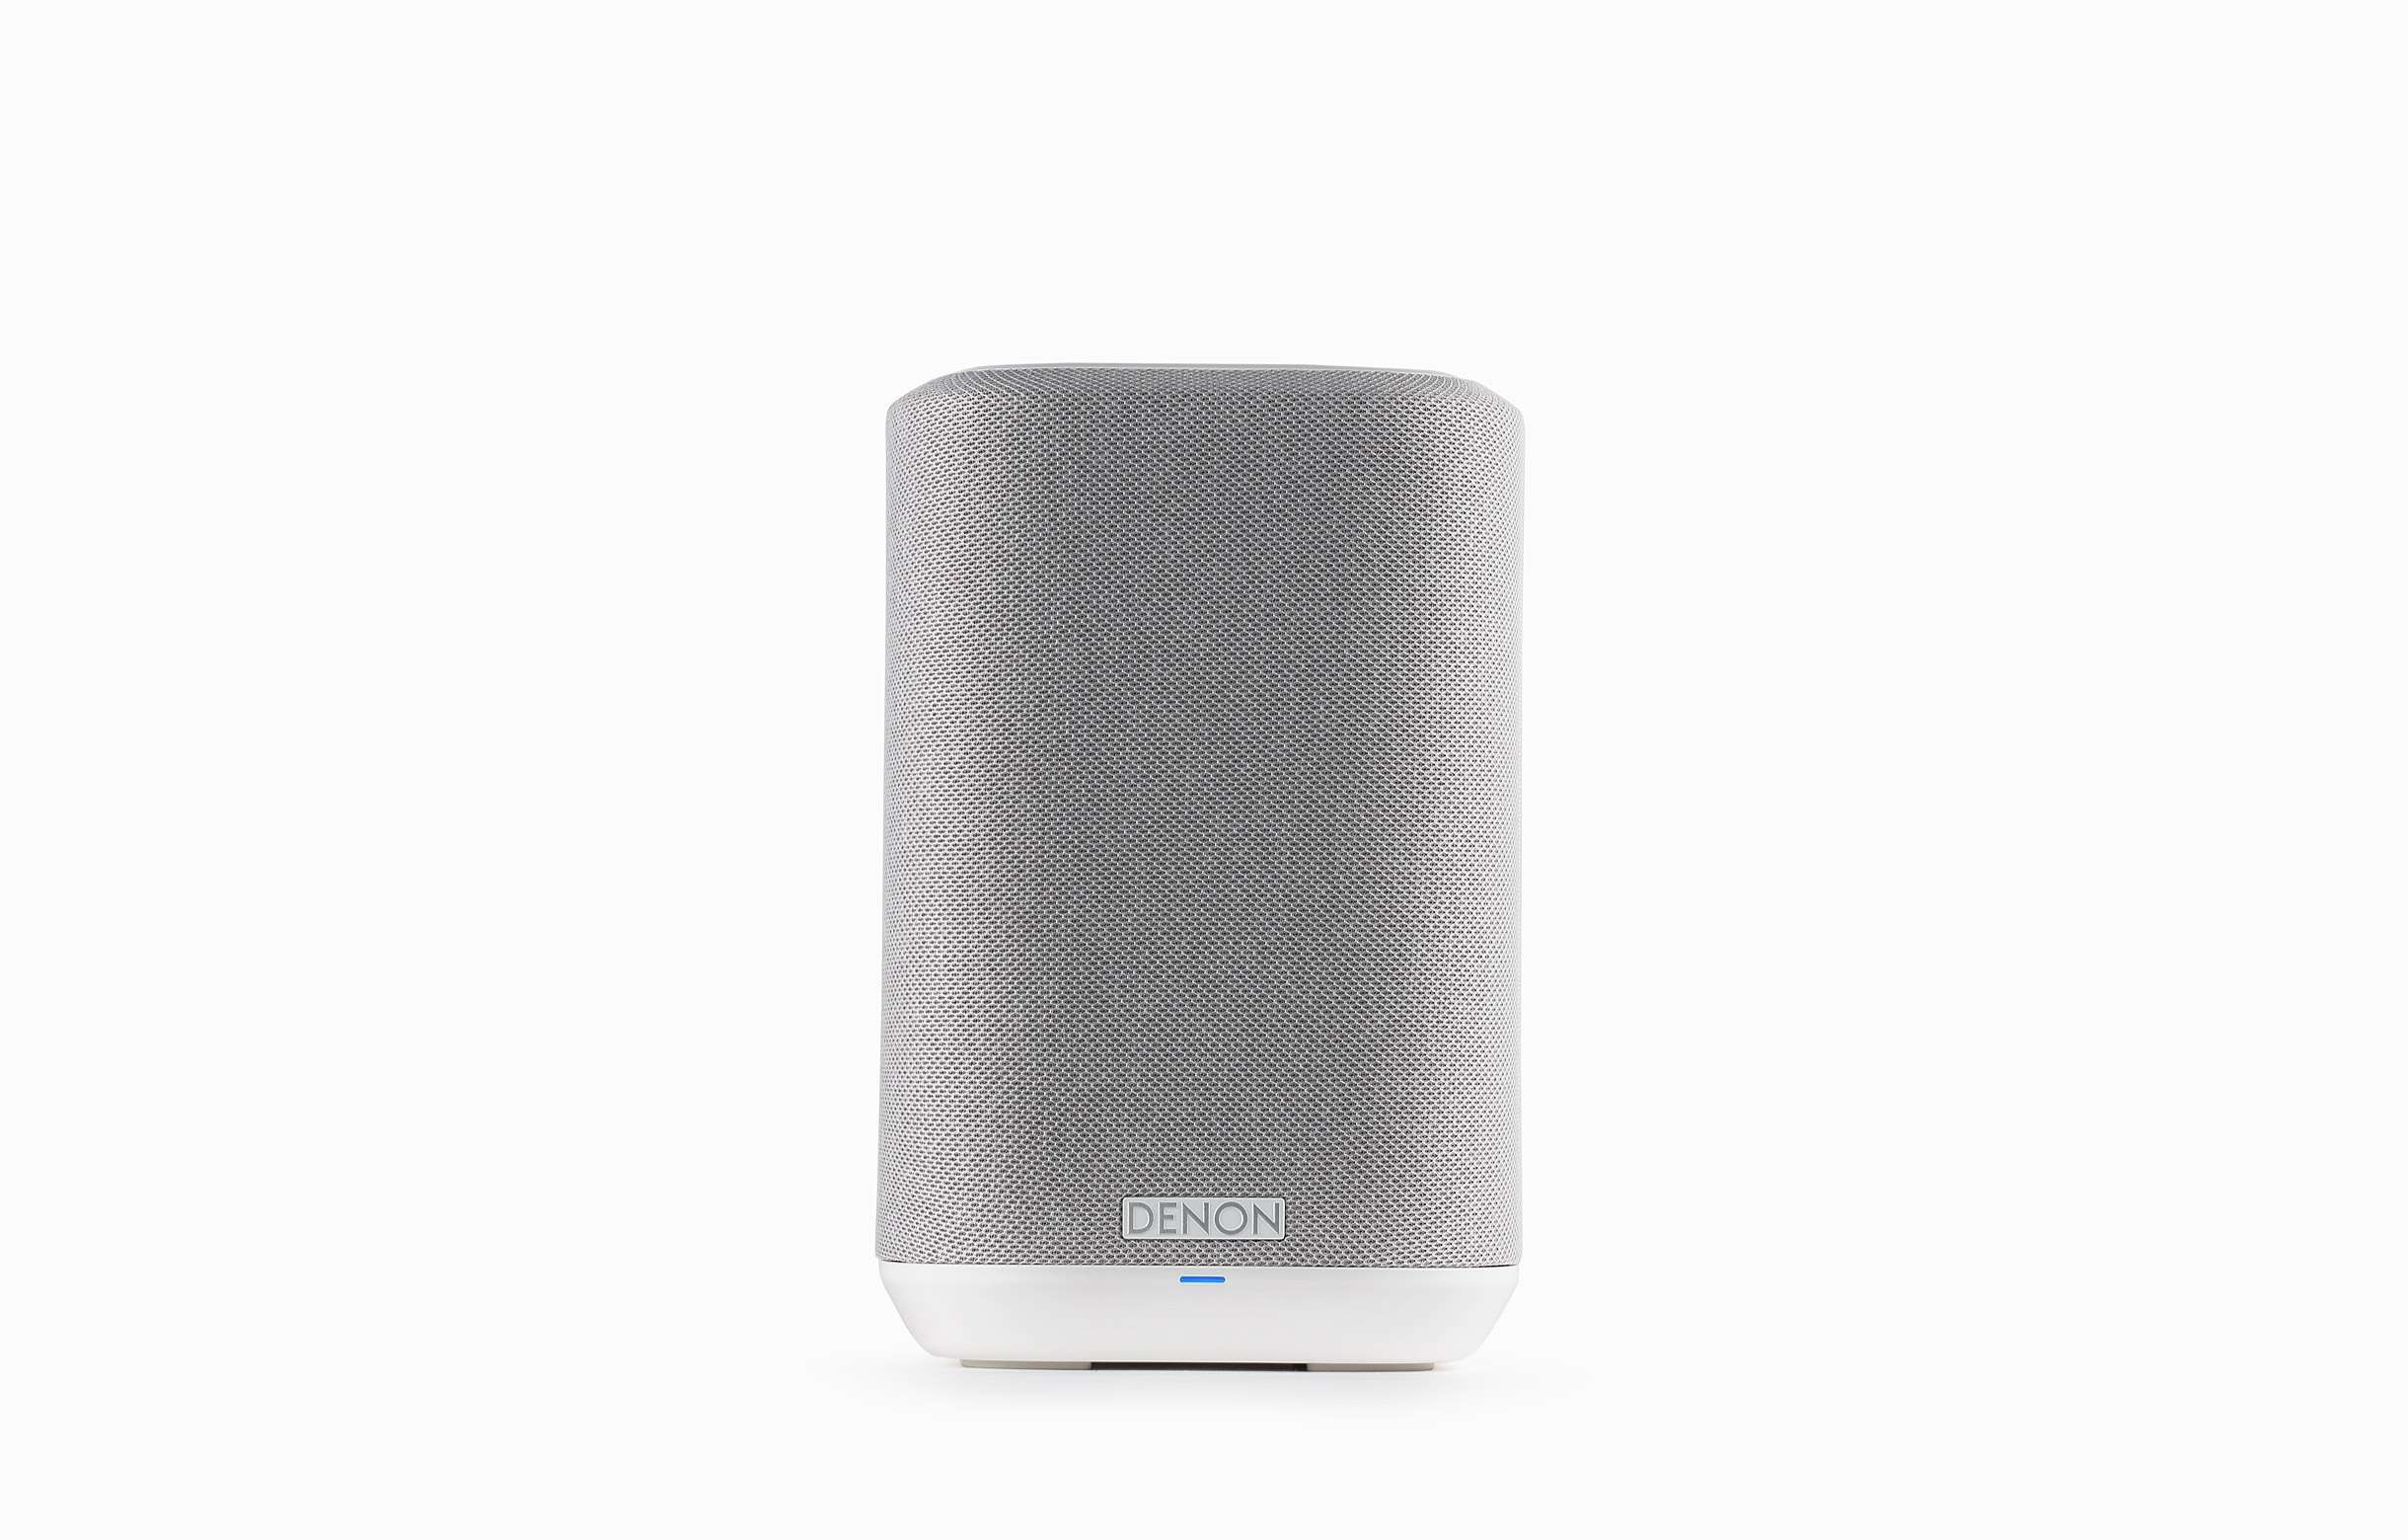 Denon Home 150 Wireless Speaker with HEOS Built-in AirPlay 2 and Bluetooth - White